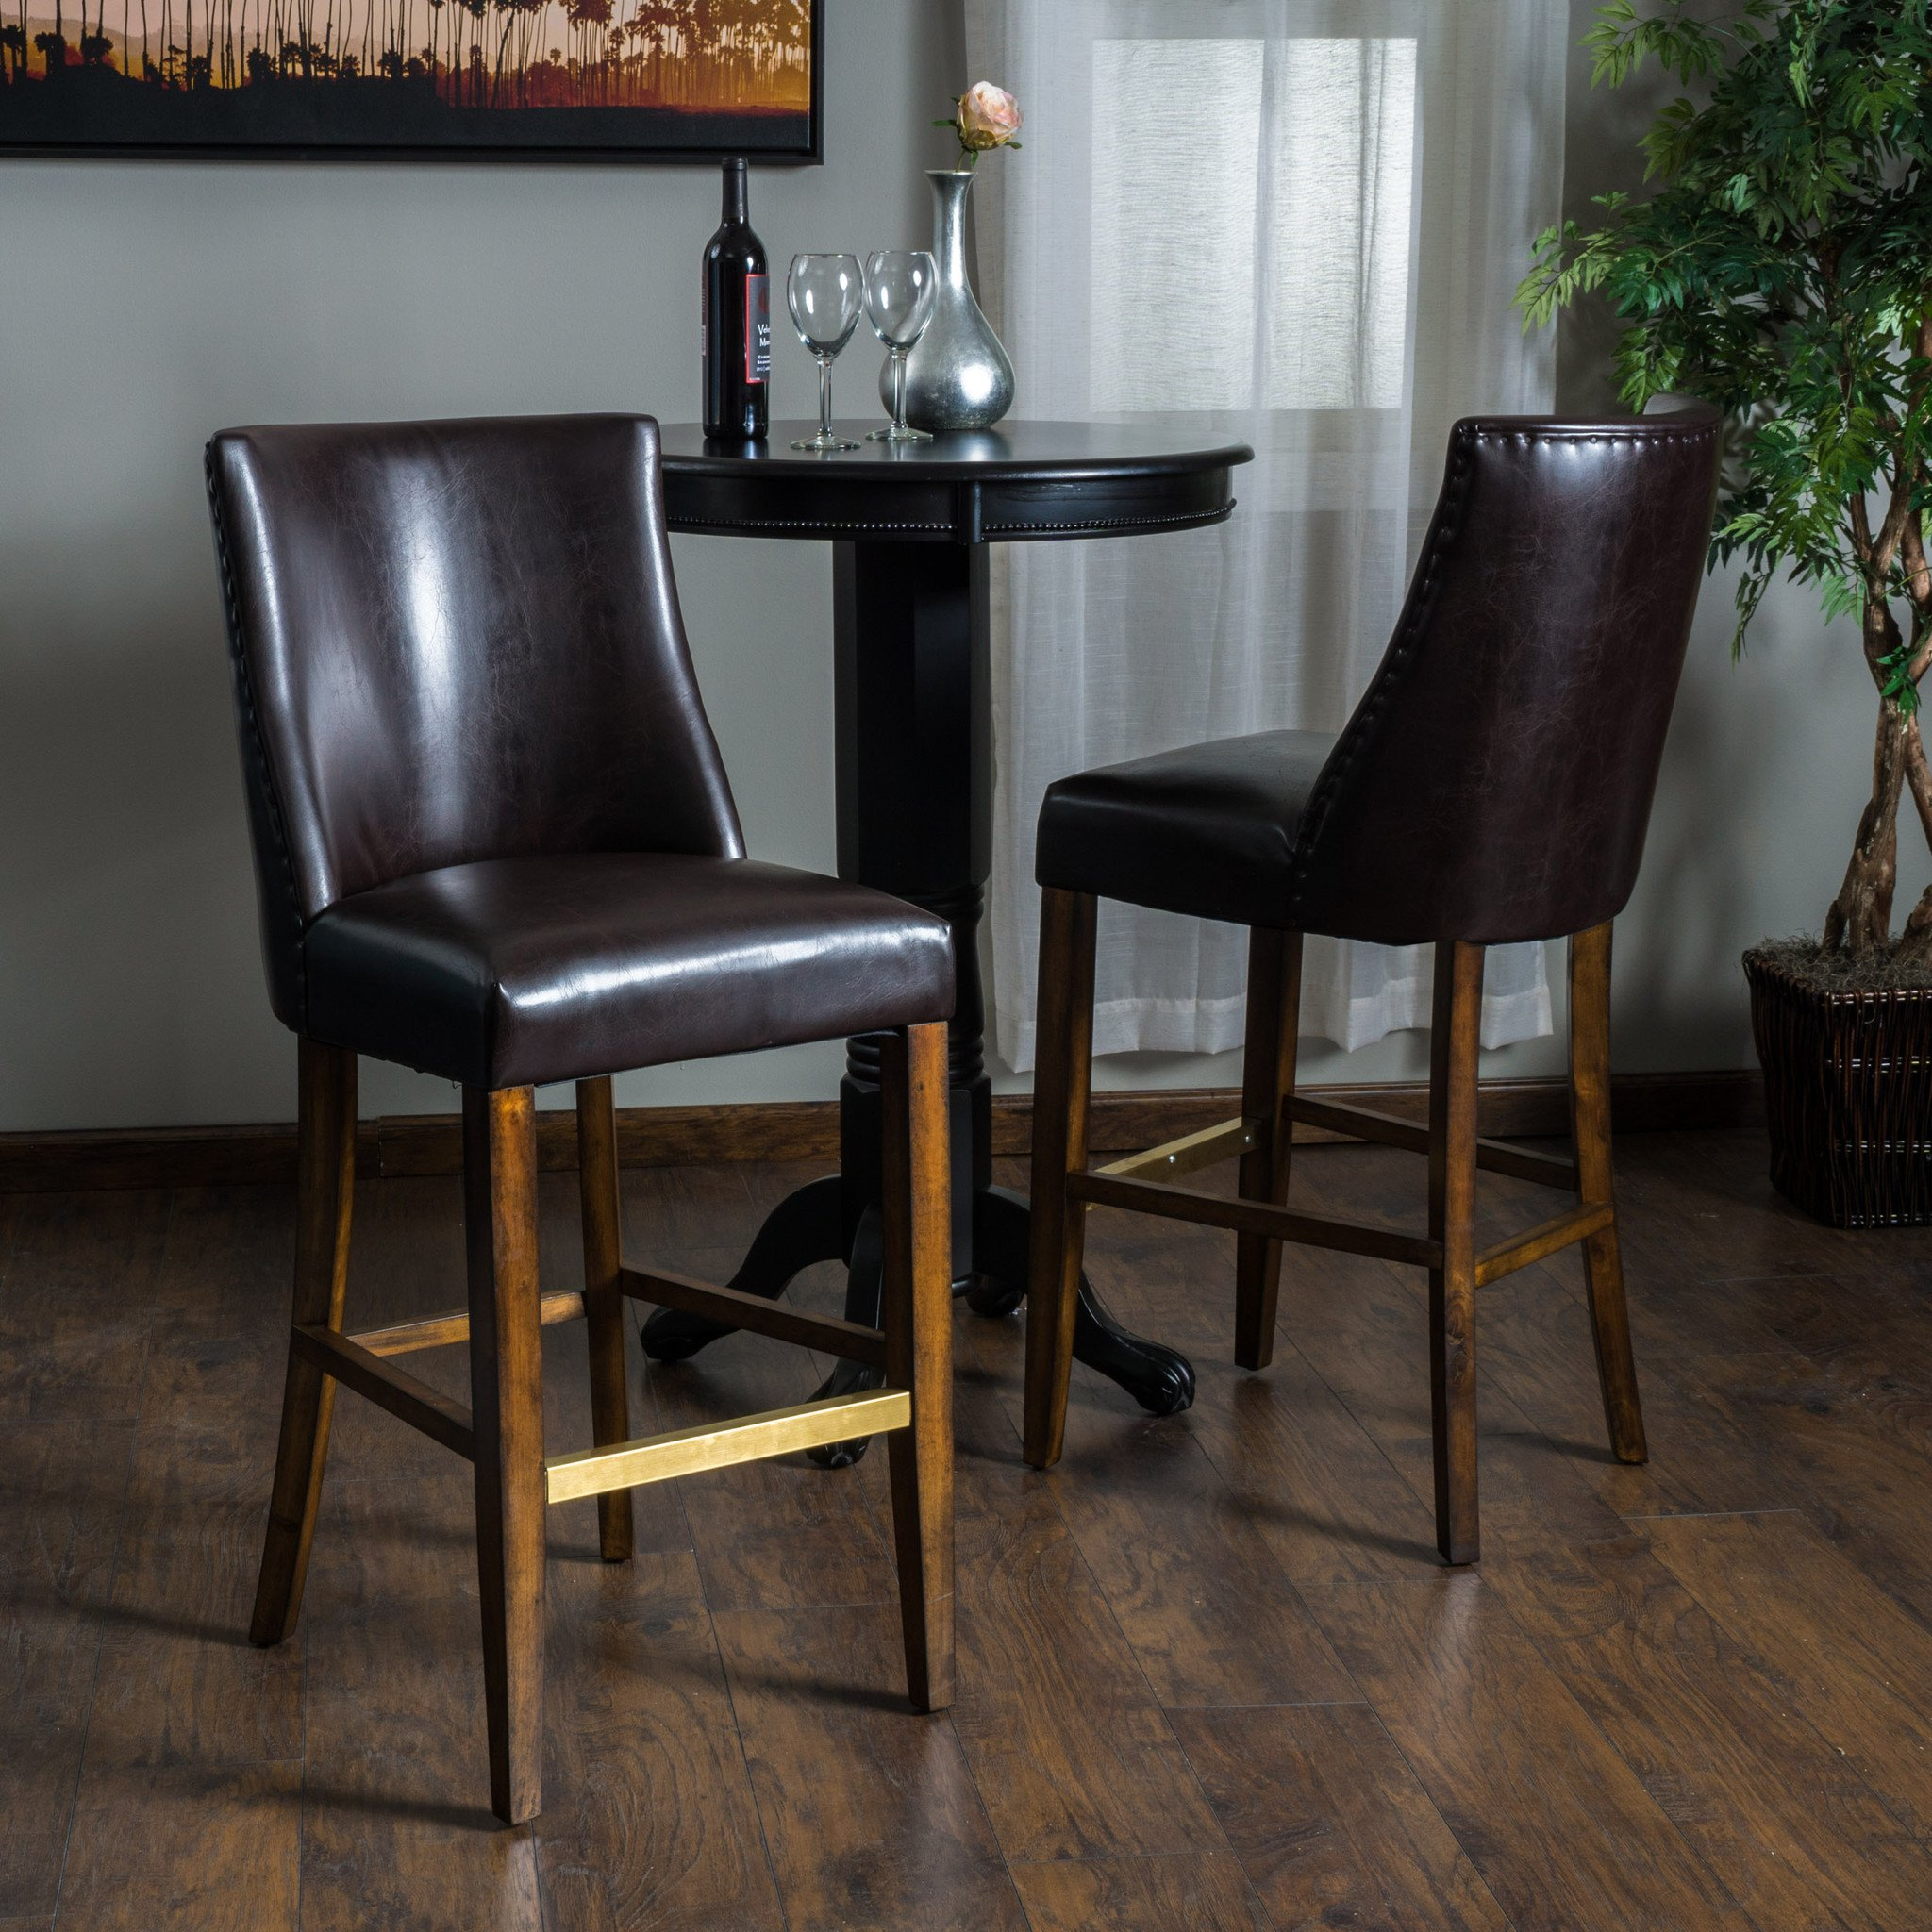 Rydel brown leather bar stools set of the rydel brown leather